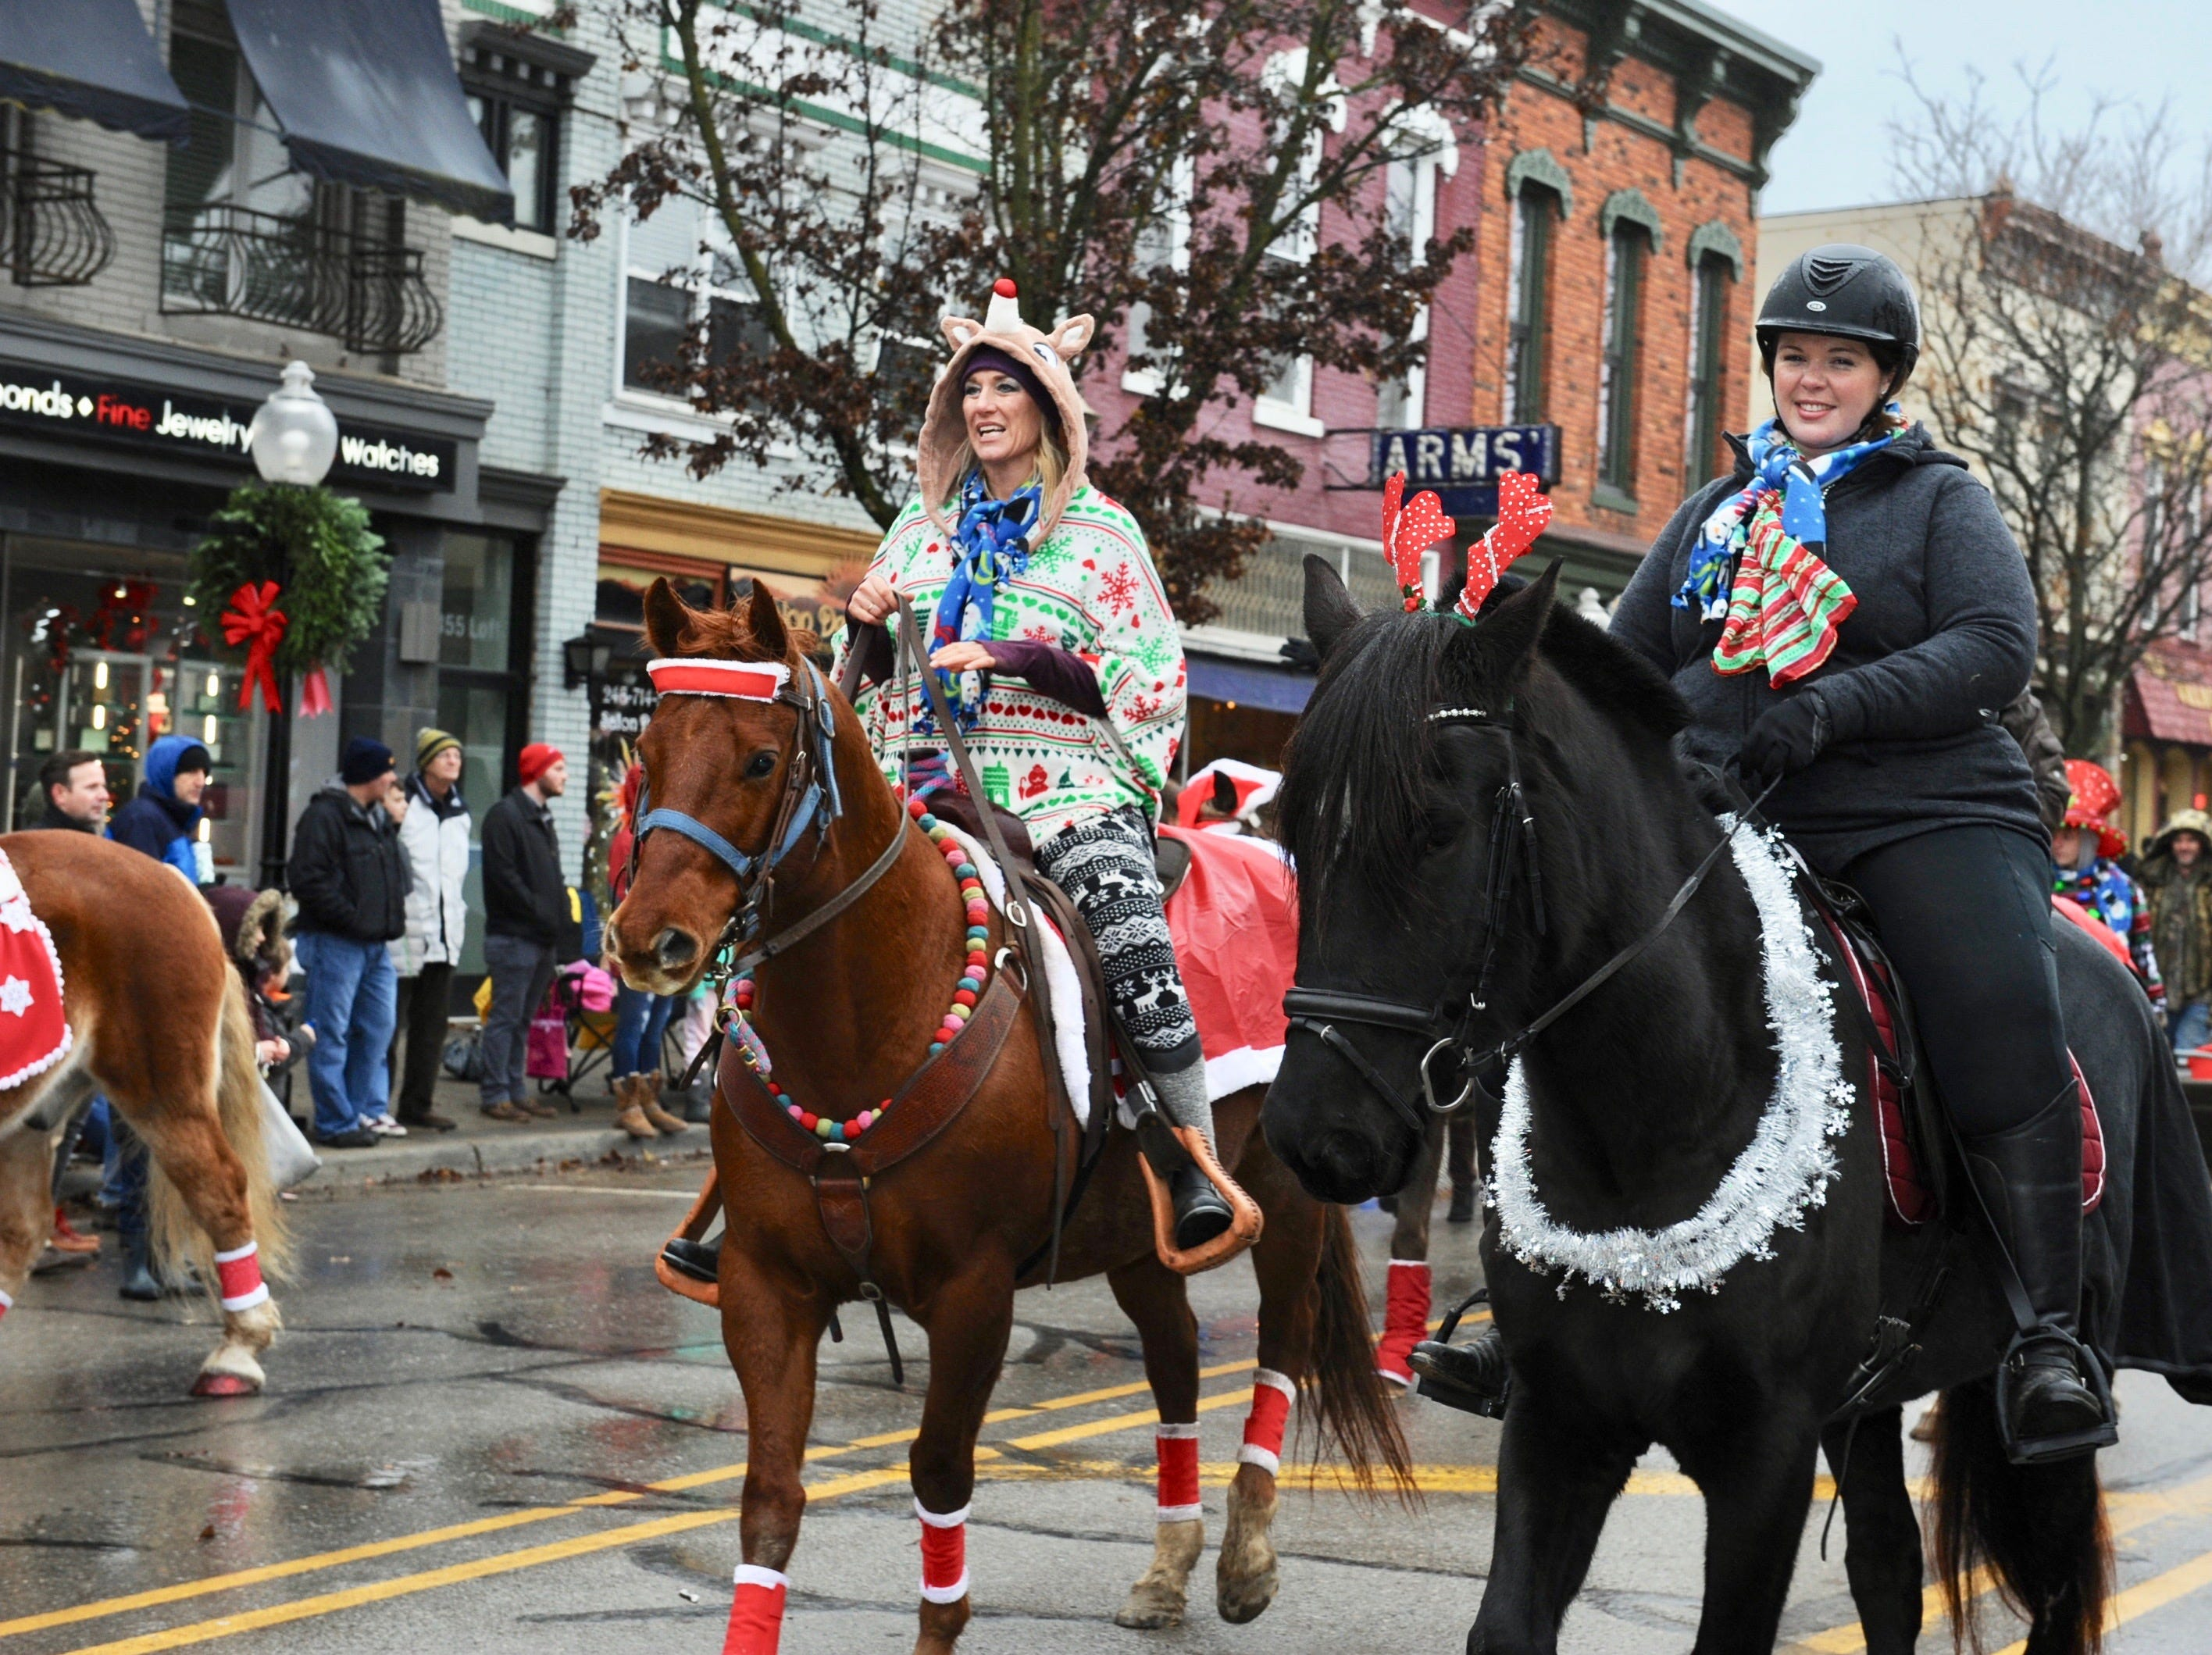 The White Lake, Milford, Highland and Holly Equestrians show off beautiful horses at this year's parade.